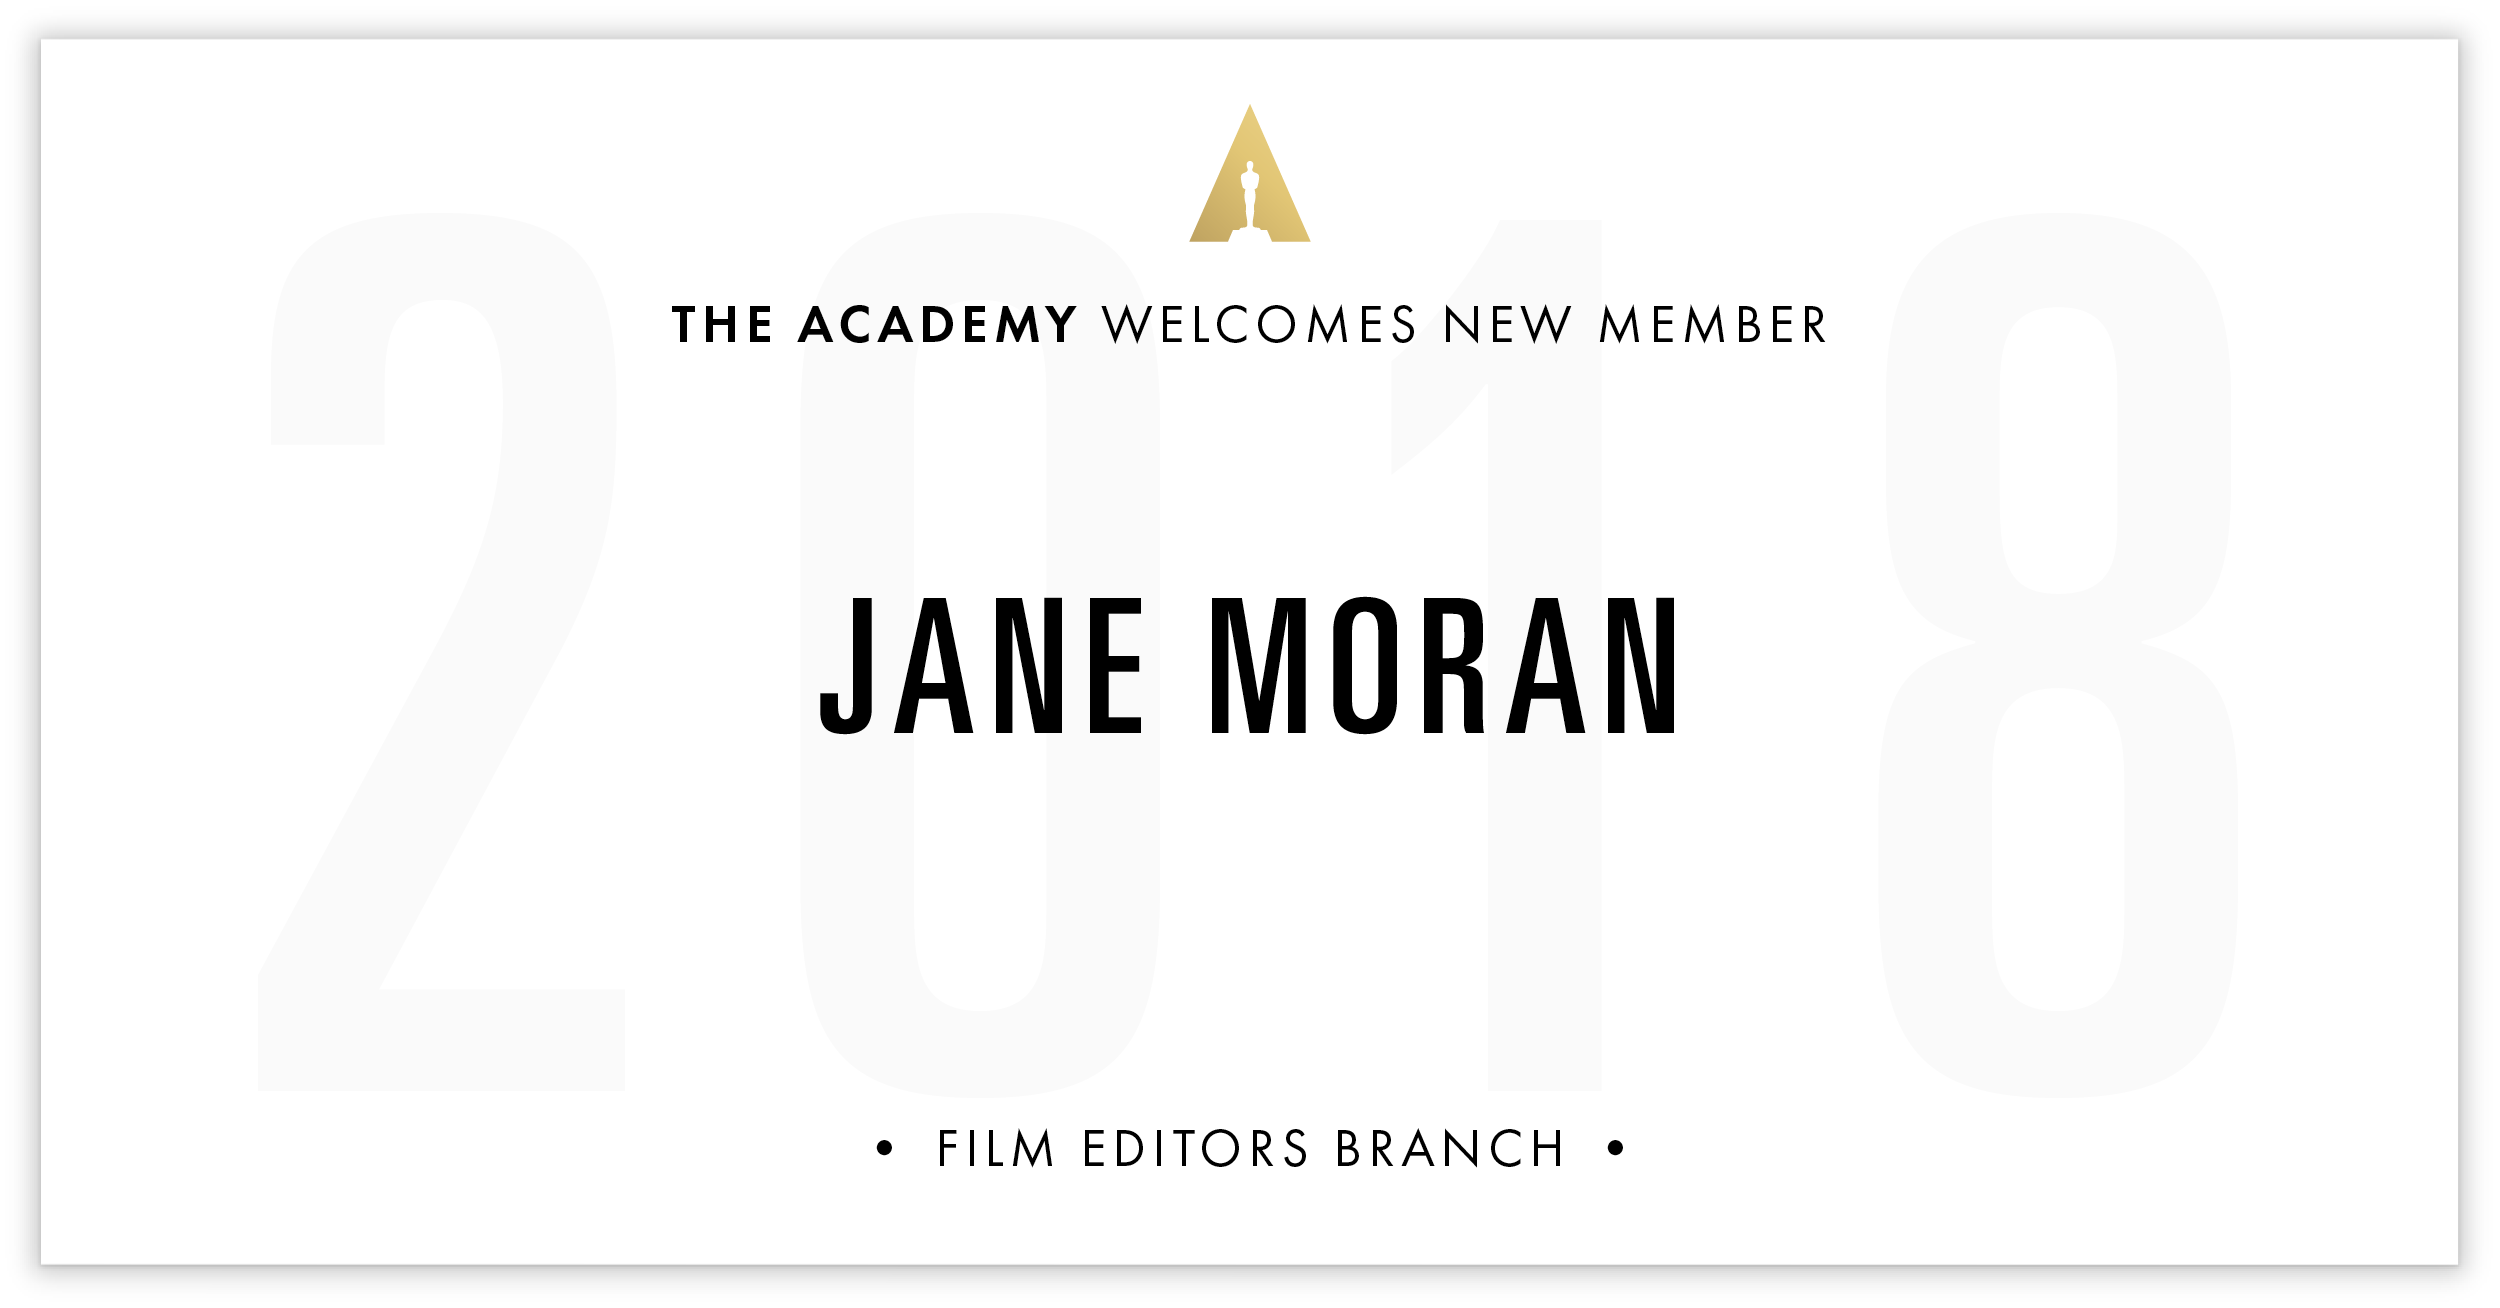 Jane Moran is invited!